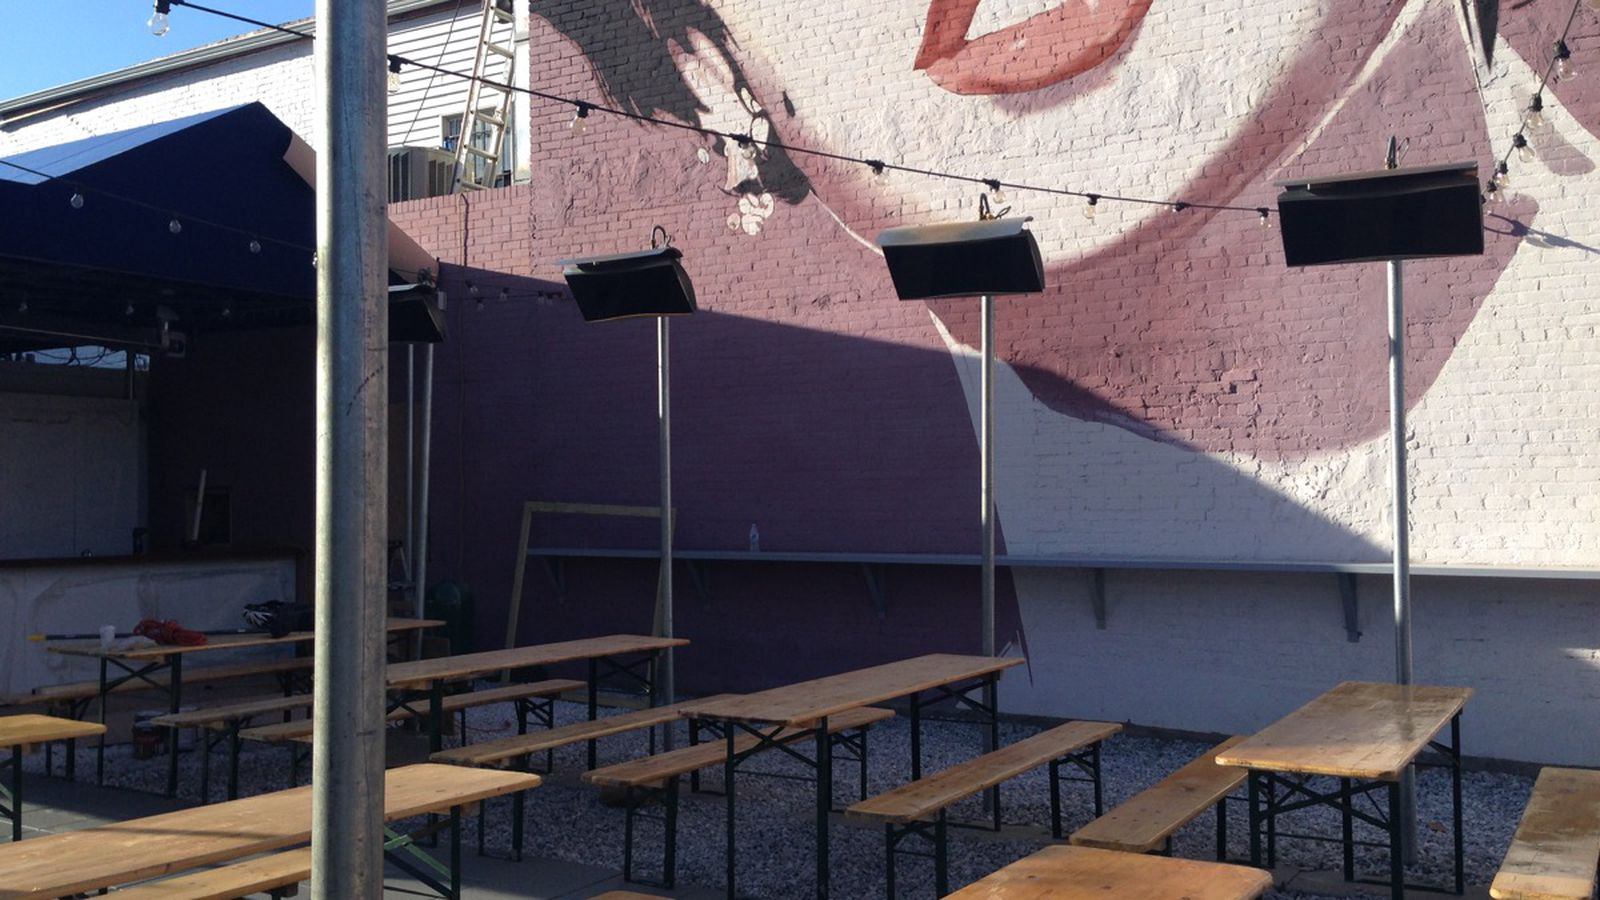 Dacha 39 S New And Improved Beer Garden Opens Today No More